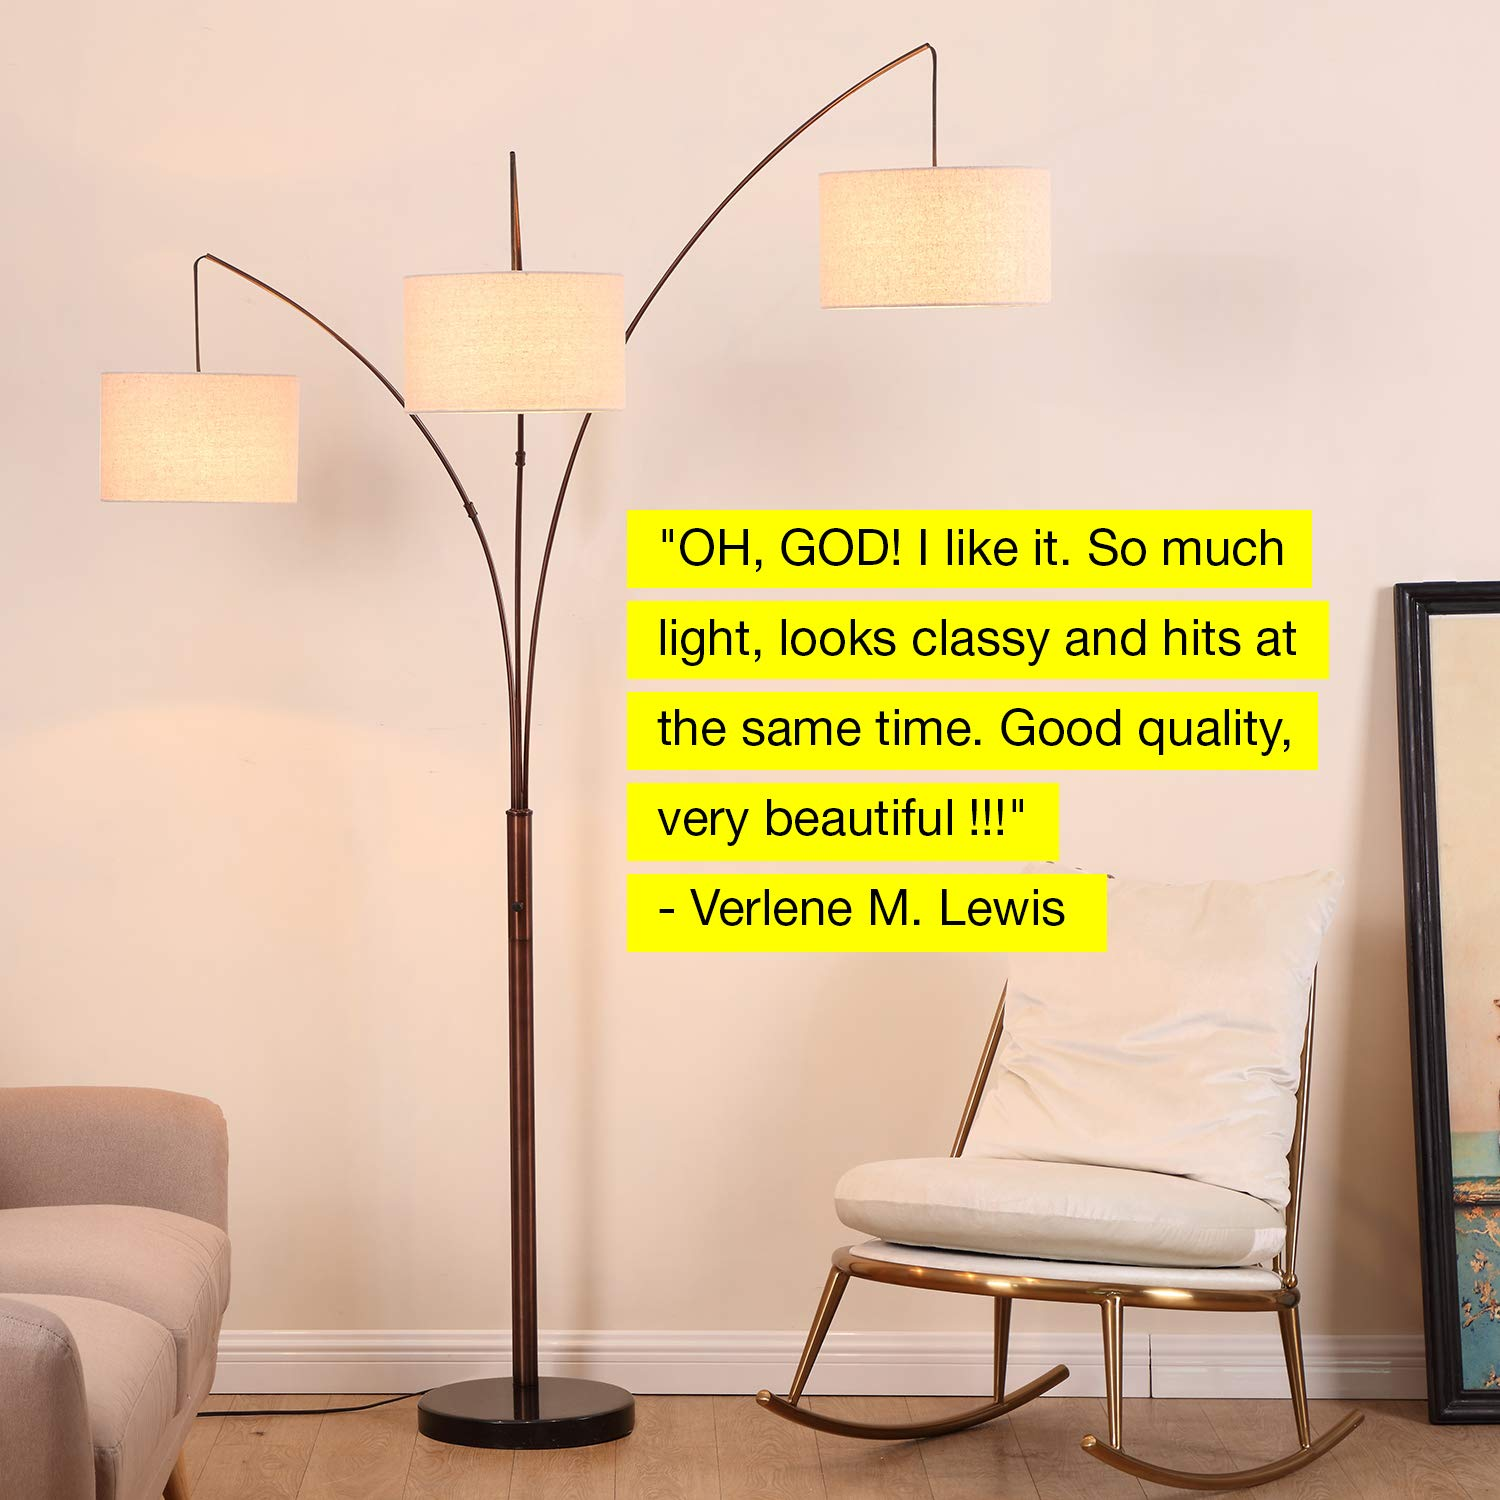 Brightech Trilage - Modern LED Arc Floor Lamp with Marble Base - Free Standing Behind The Couch Lamp for Living Room - 3 Hanging Lights, Great for Reading - Oil Rubbed Bronze by Brightech (Image #8)